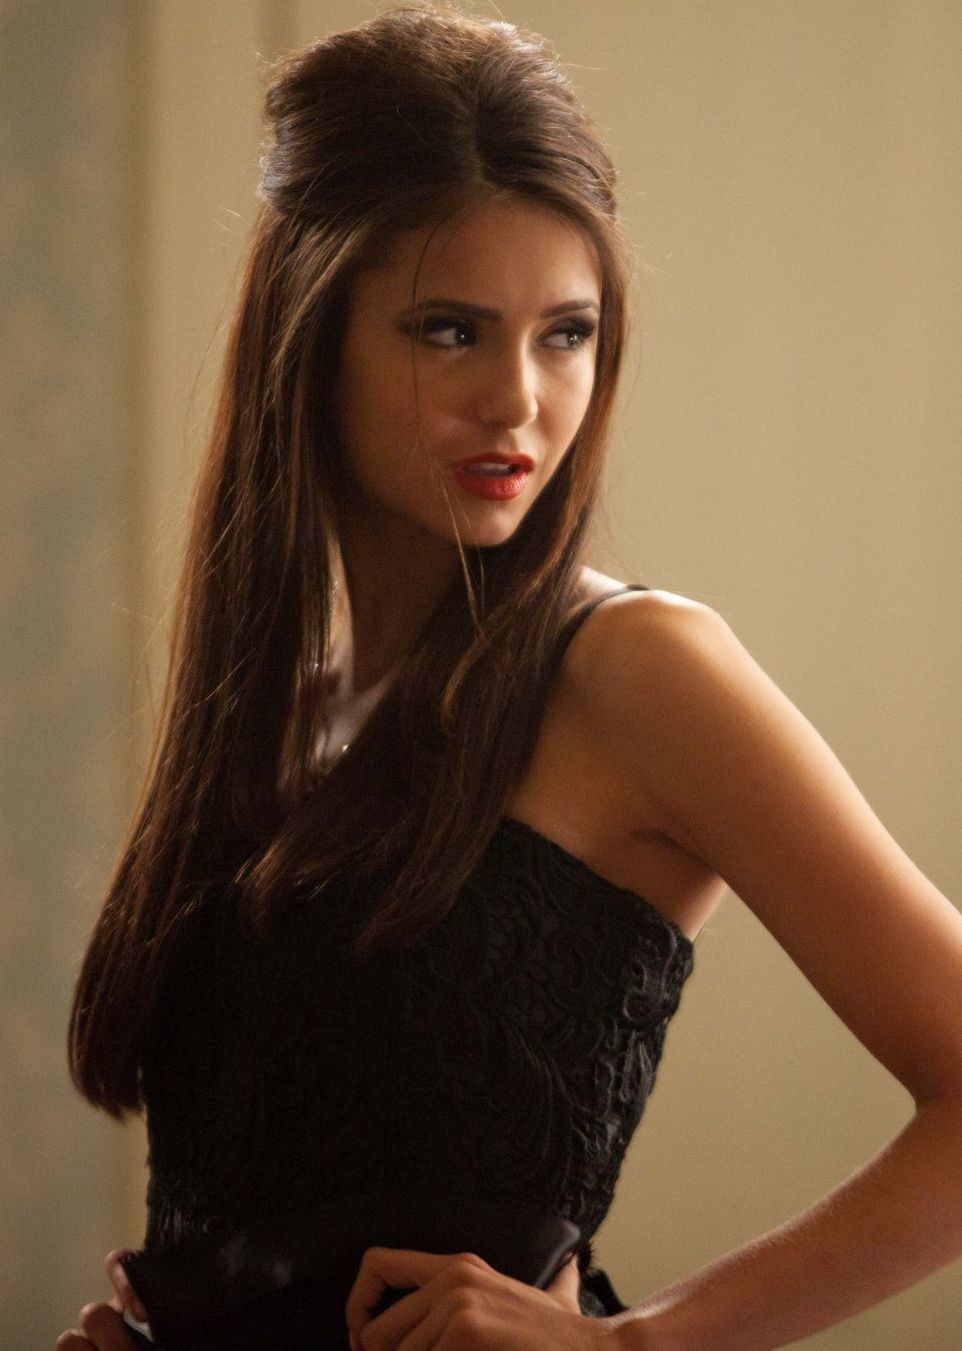 Katherine Pierce